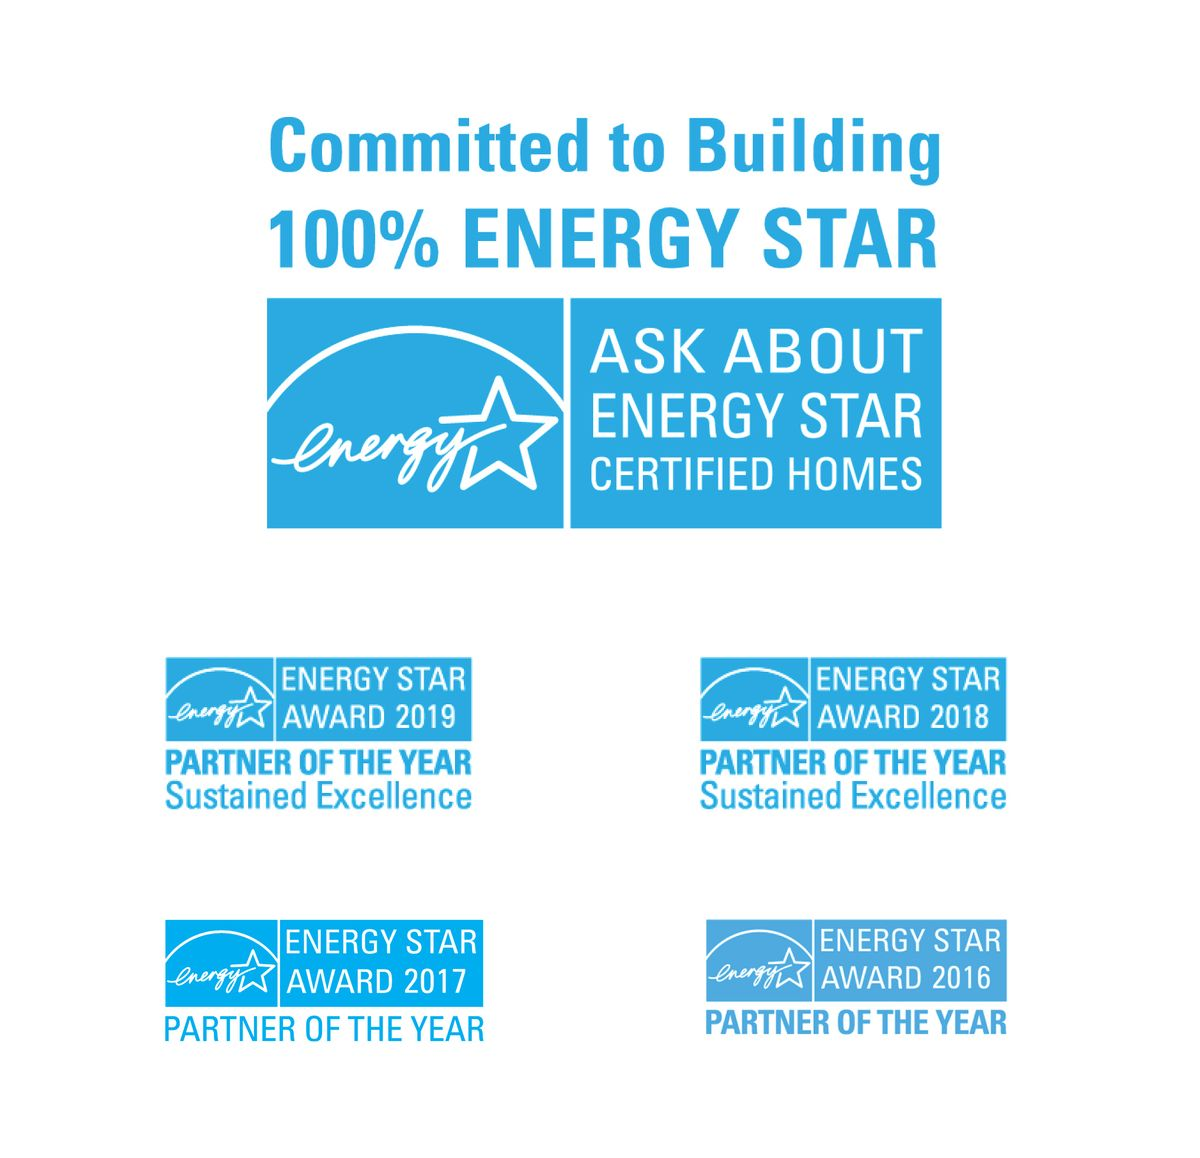 100% ENERGY STAR® Certified Homes